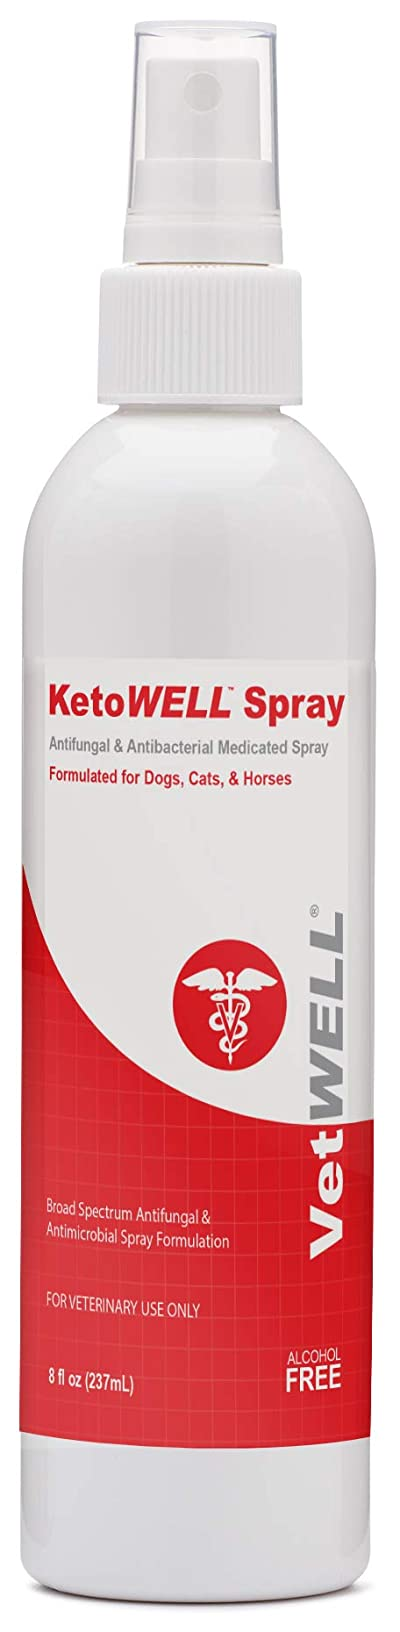 KetoWELL Chlorhexidine & Ketoconazole Antiseptic Medicated Spray